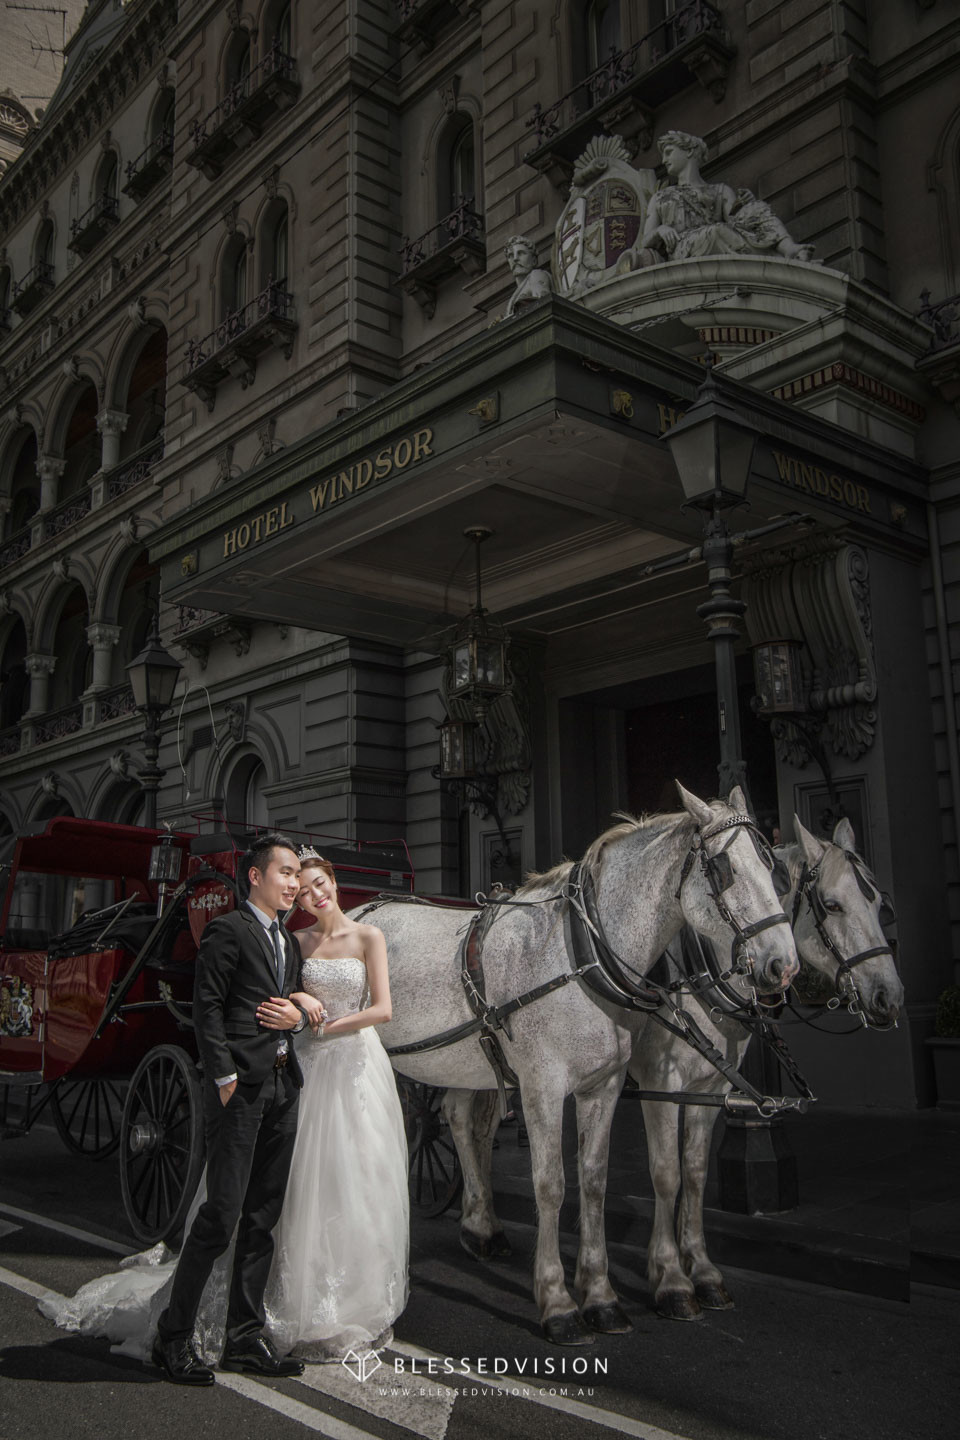 Blessed Wedding Photography: The Hotel Windsor - Blessed Vision Photography